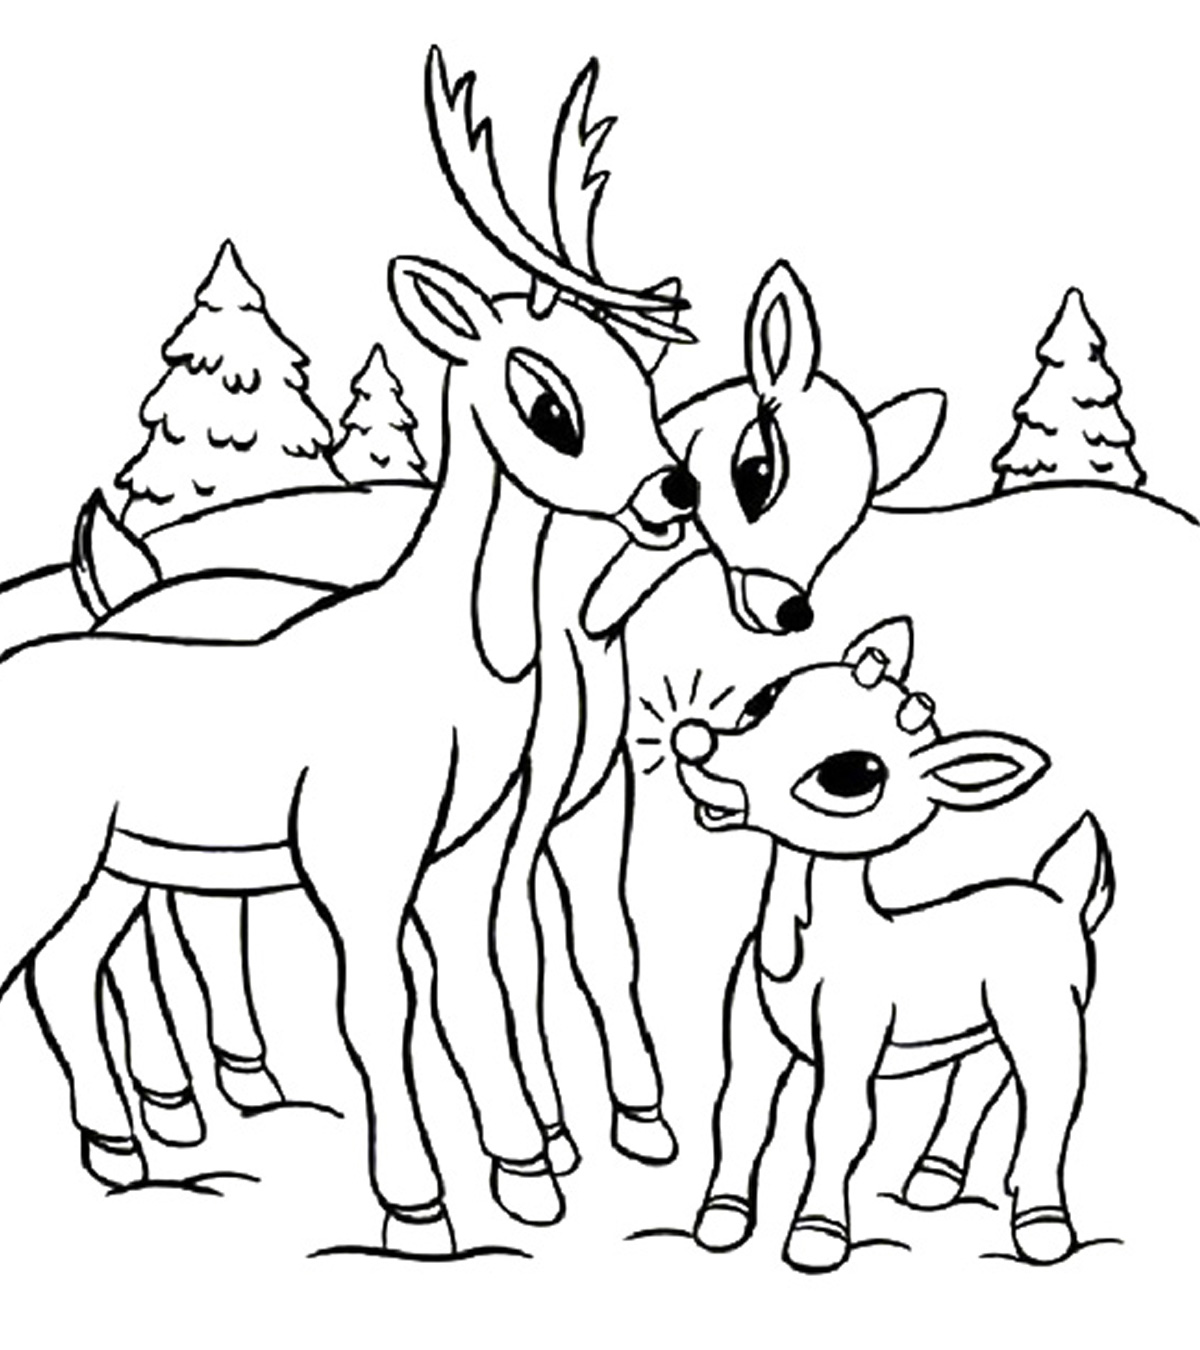 rudolph the red nosed reindeer coloring page free printable rudolph coloring pages for kids reindeer red page nosed the coloring rudolph